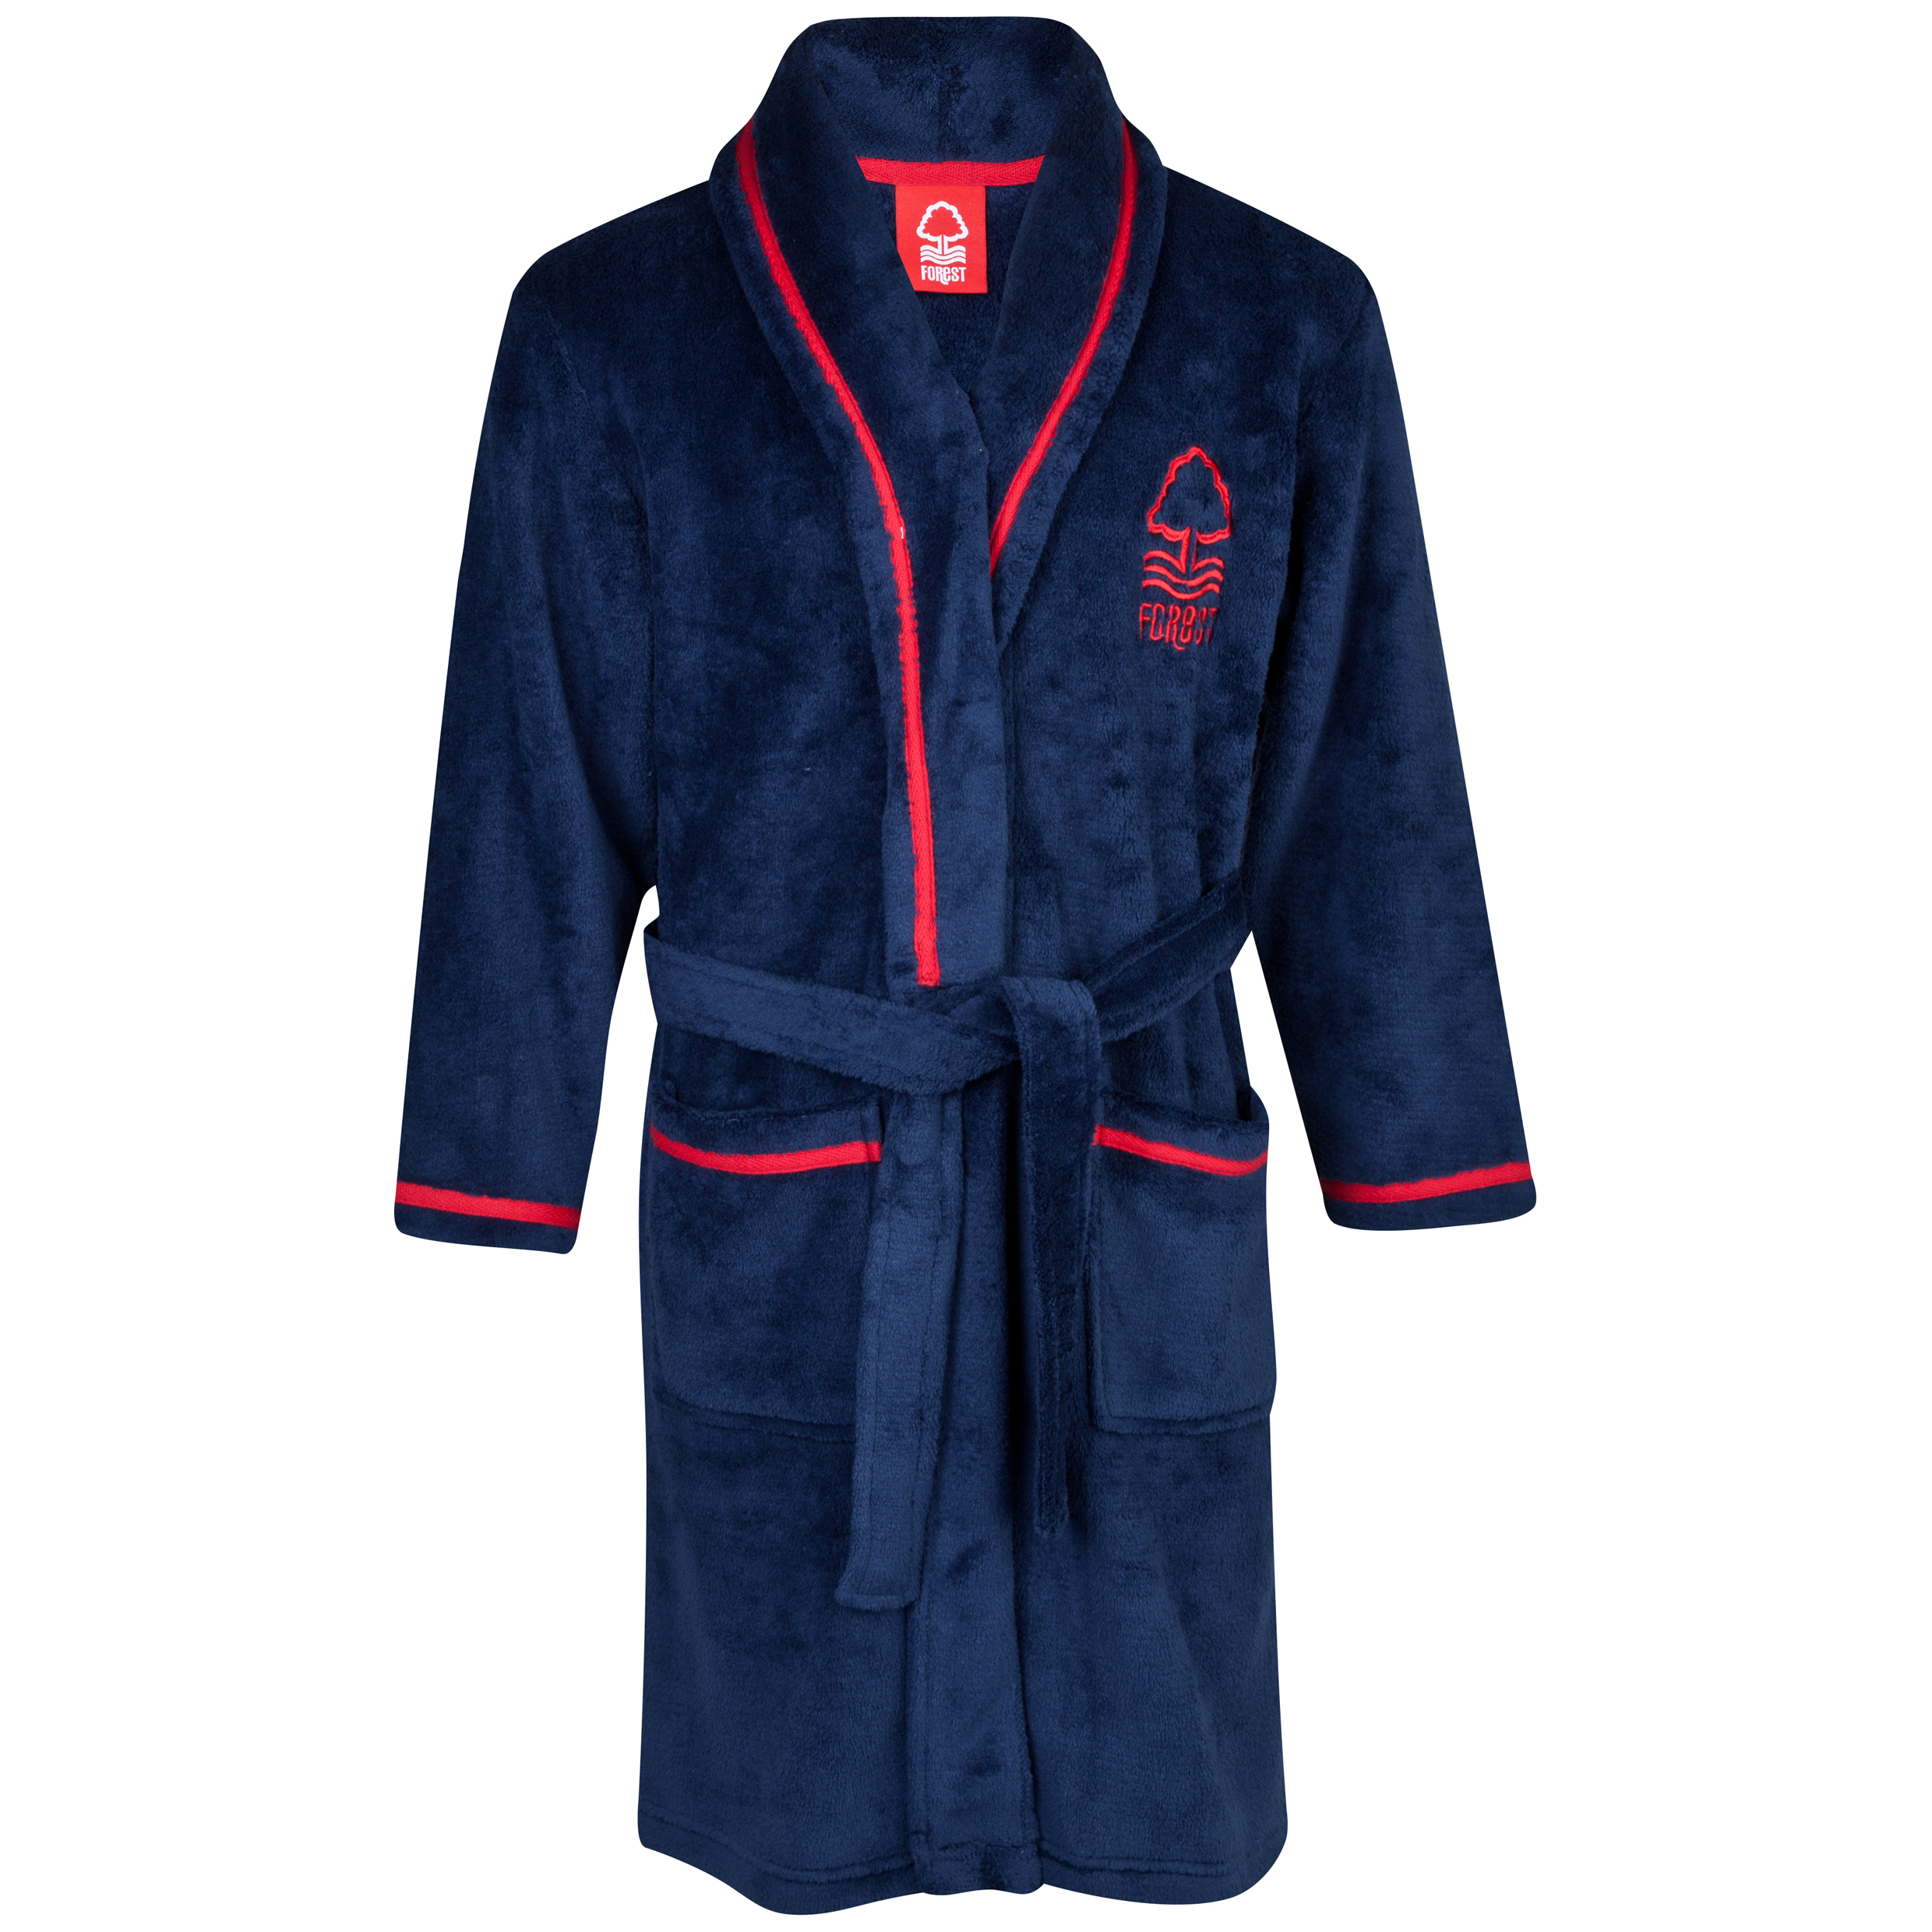 Nottingham Forest Robe Boys Navy